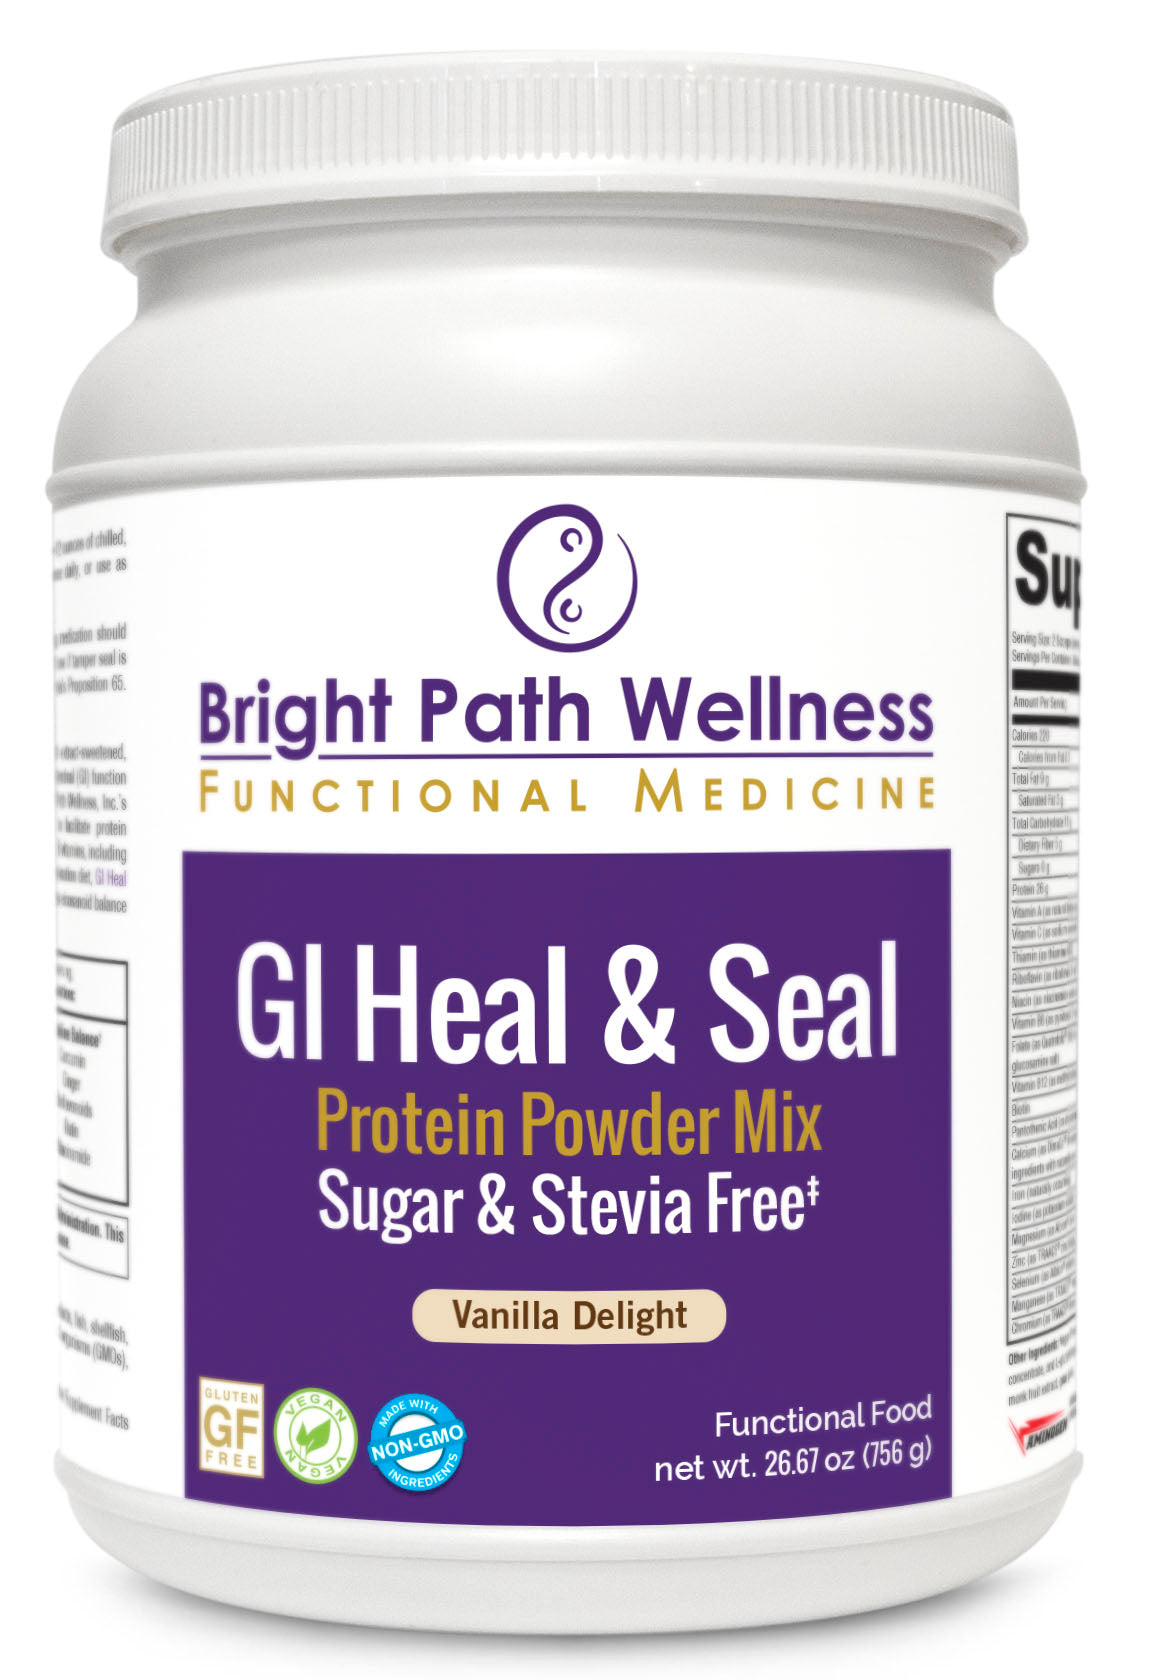 GI Heal and Seal Protein Powder Mix - SUGAR FREE, STEVIA FREE, Non GMO, Gluten Free, Vegan, Cleanse, Detox, Nutritious